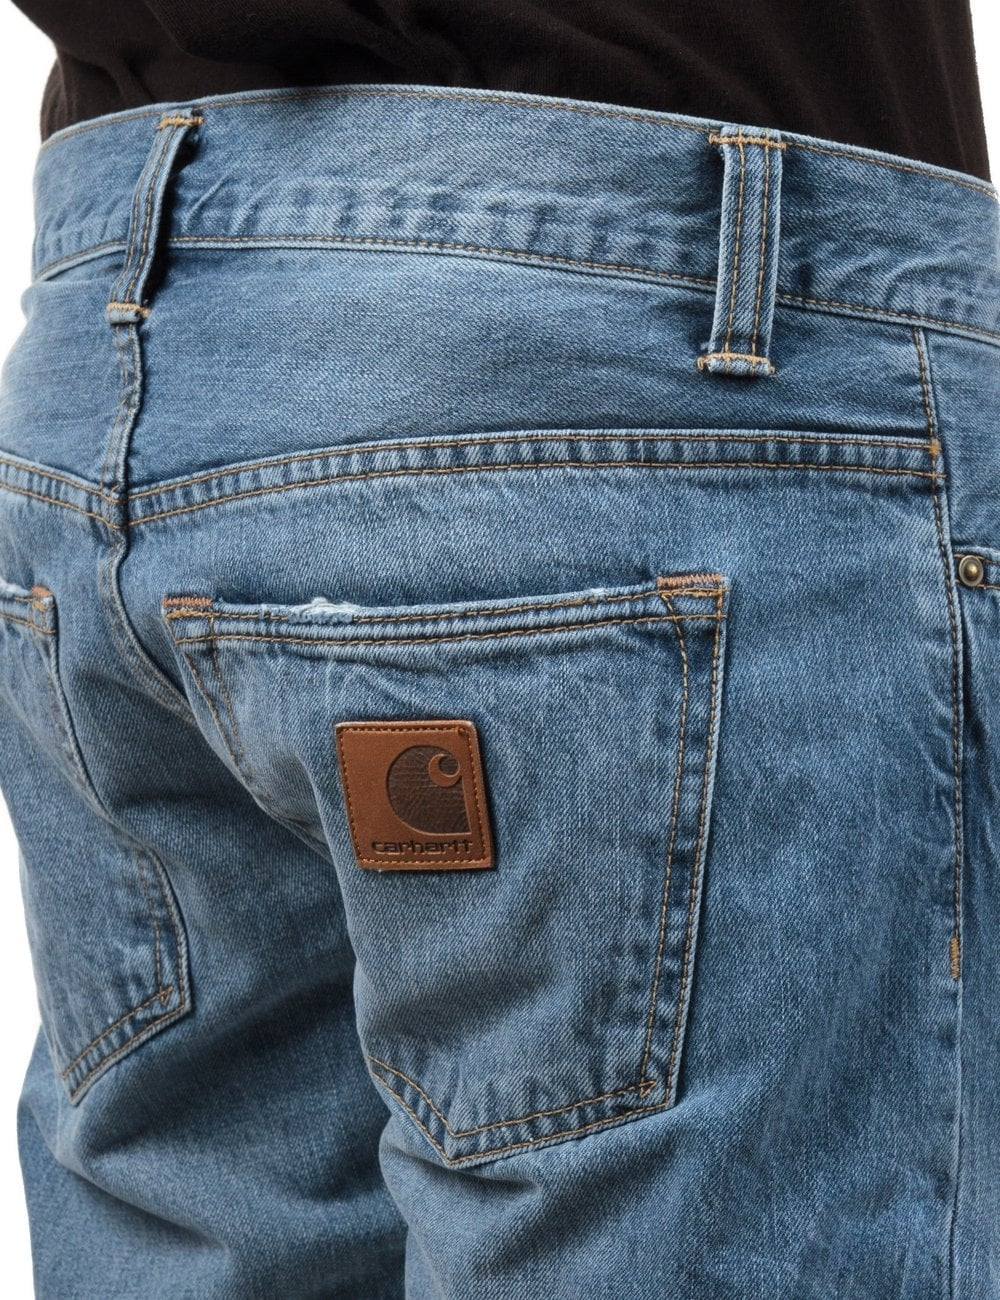 d699146b Carhartt WIP Buccaneer Pant - Blue Pier Washed - Clothing from Fat ...